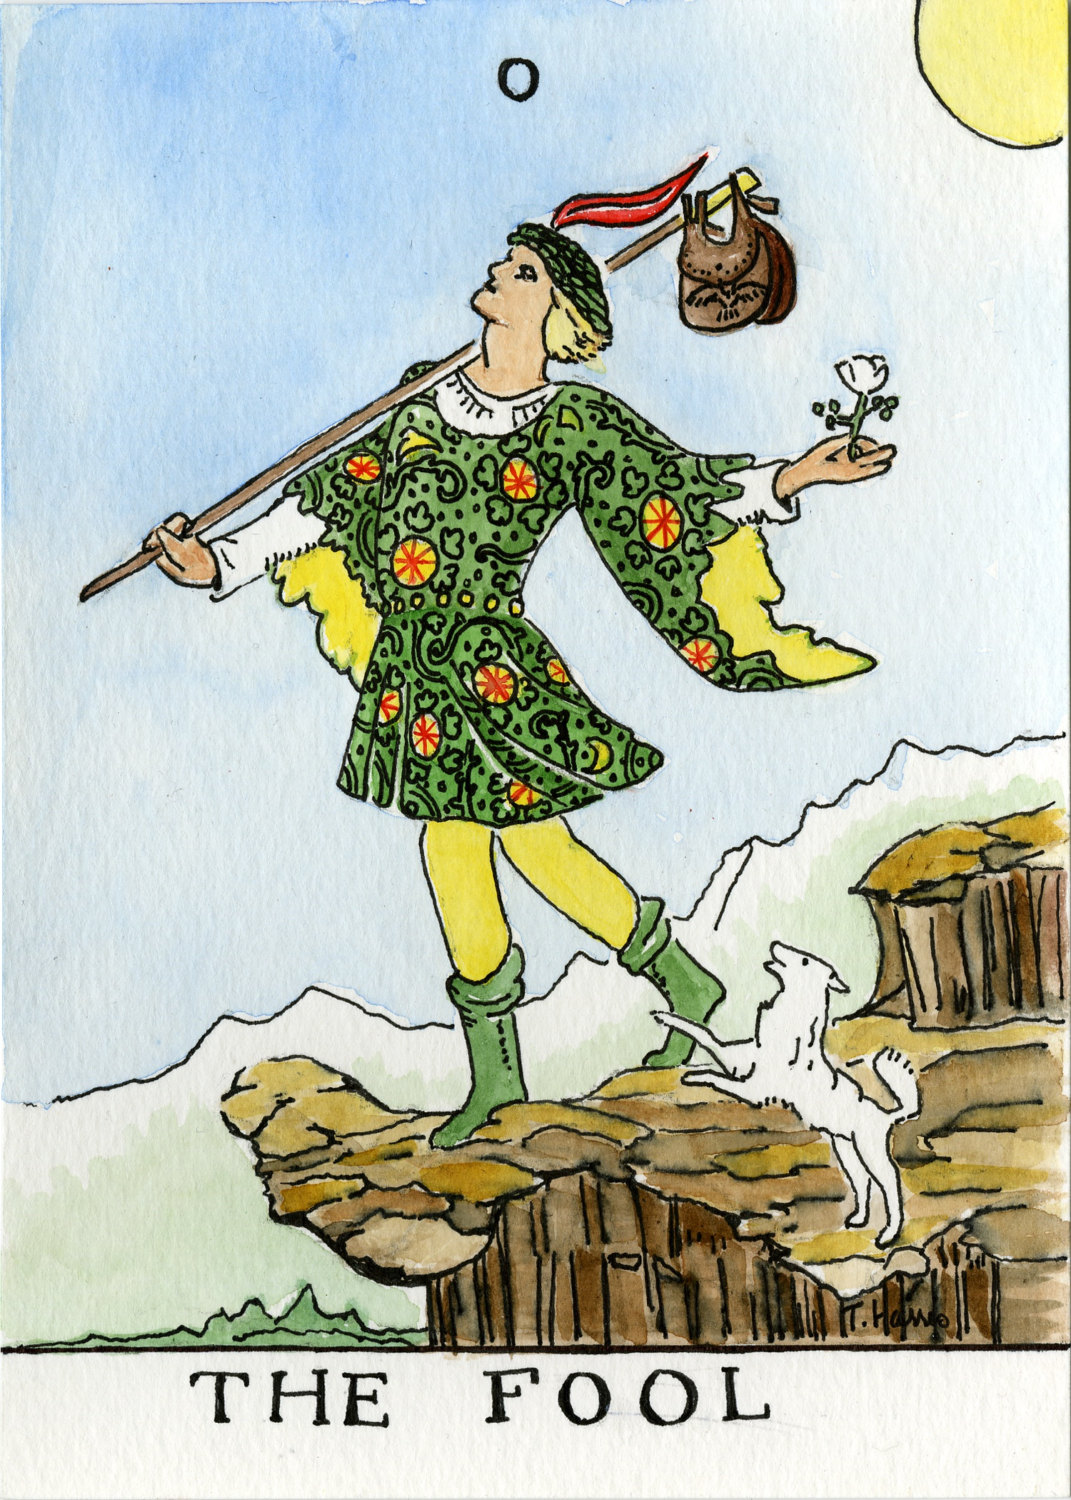 The Fool: INTUITING TAROT AND JUNG: Card 0 (The Fool